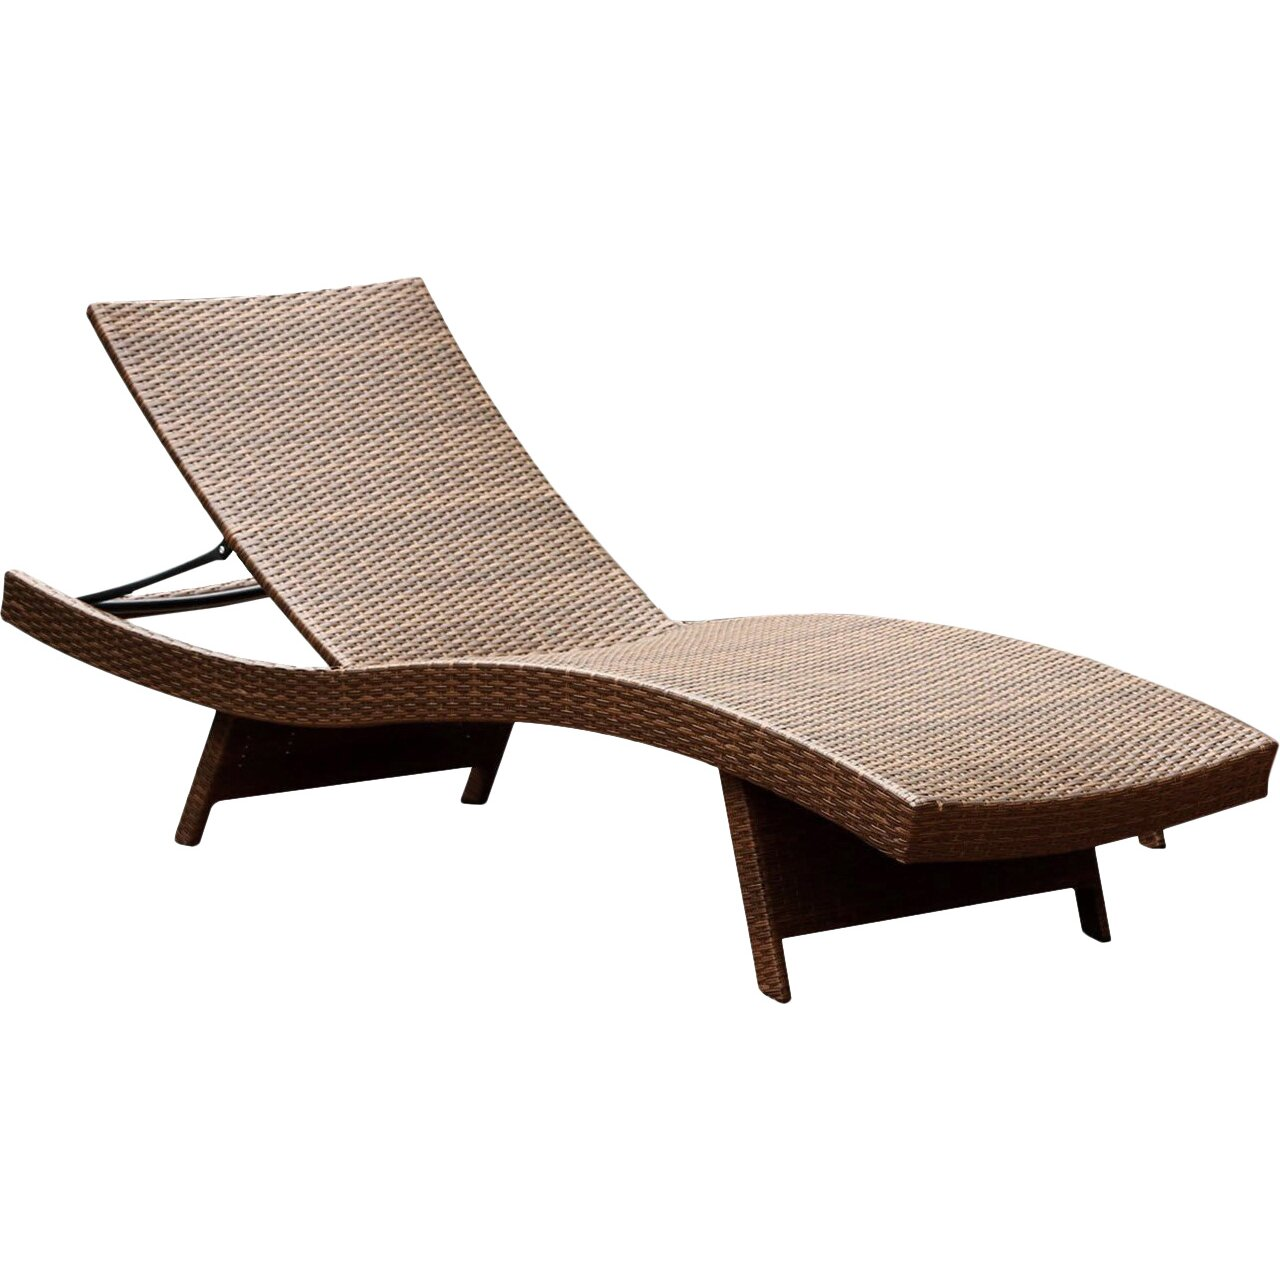 Brayden Studio Battista Chaise Lounge Reviews